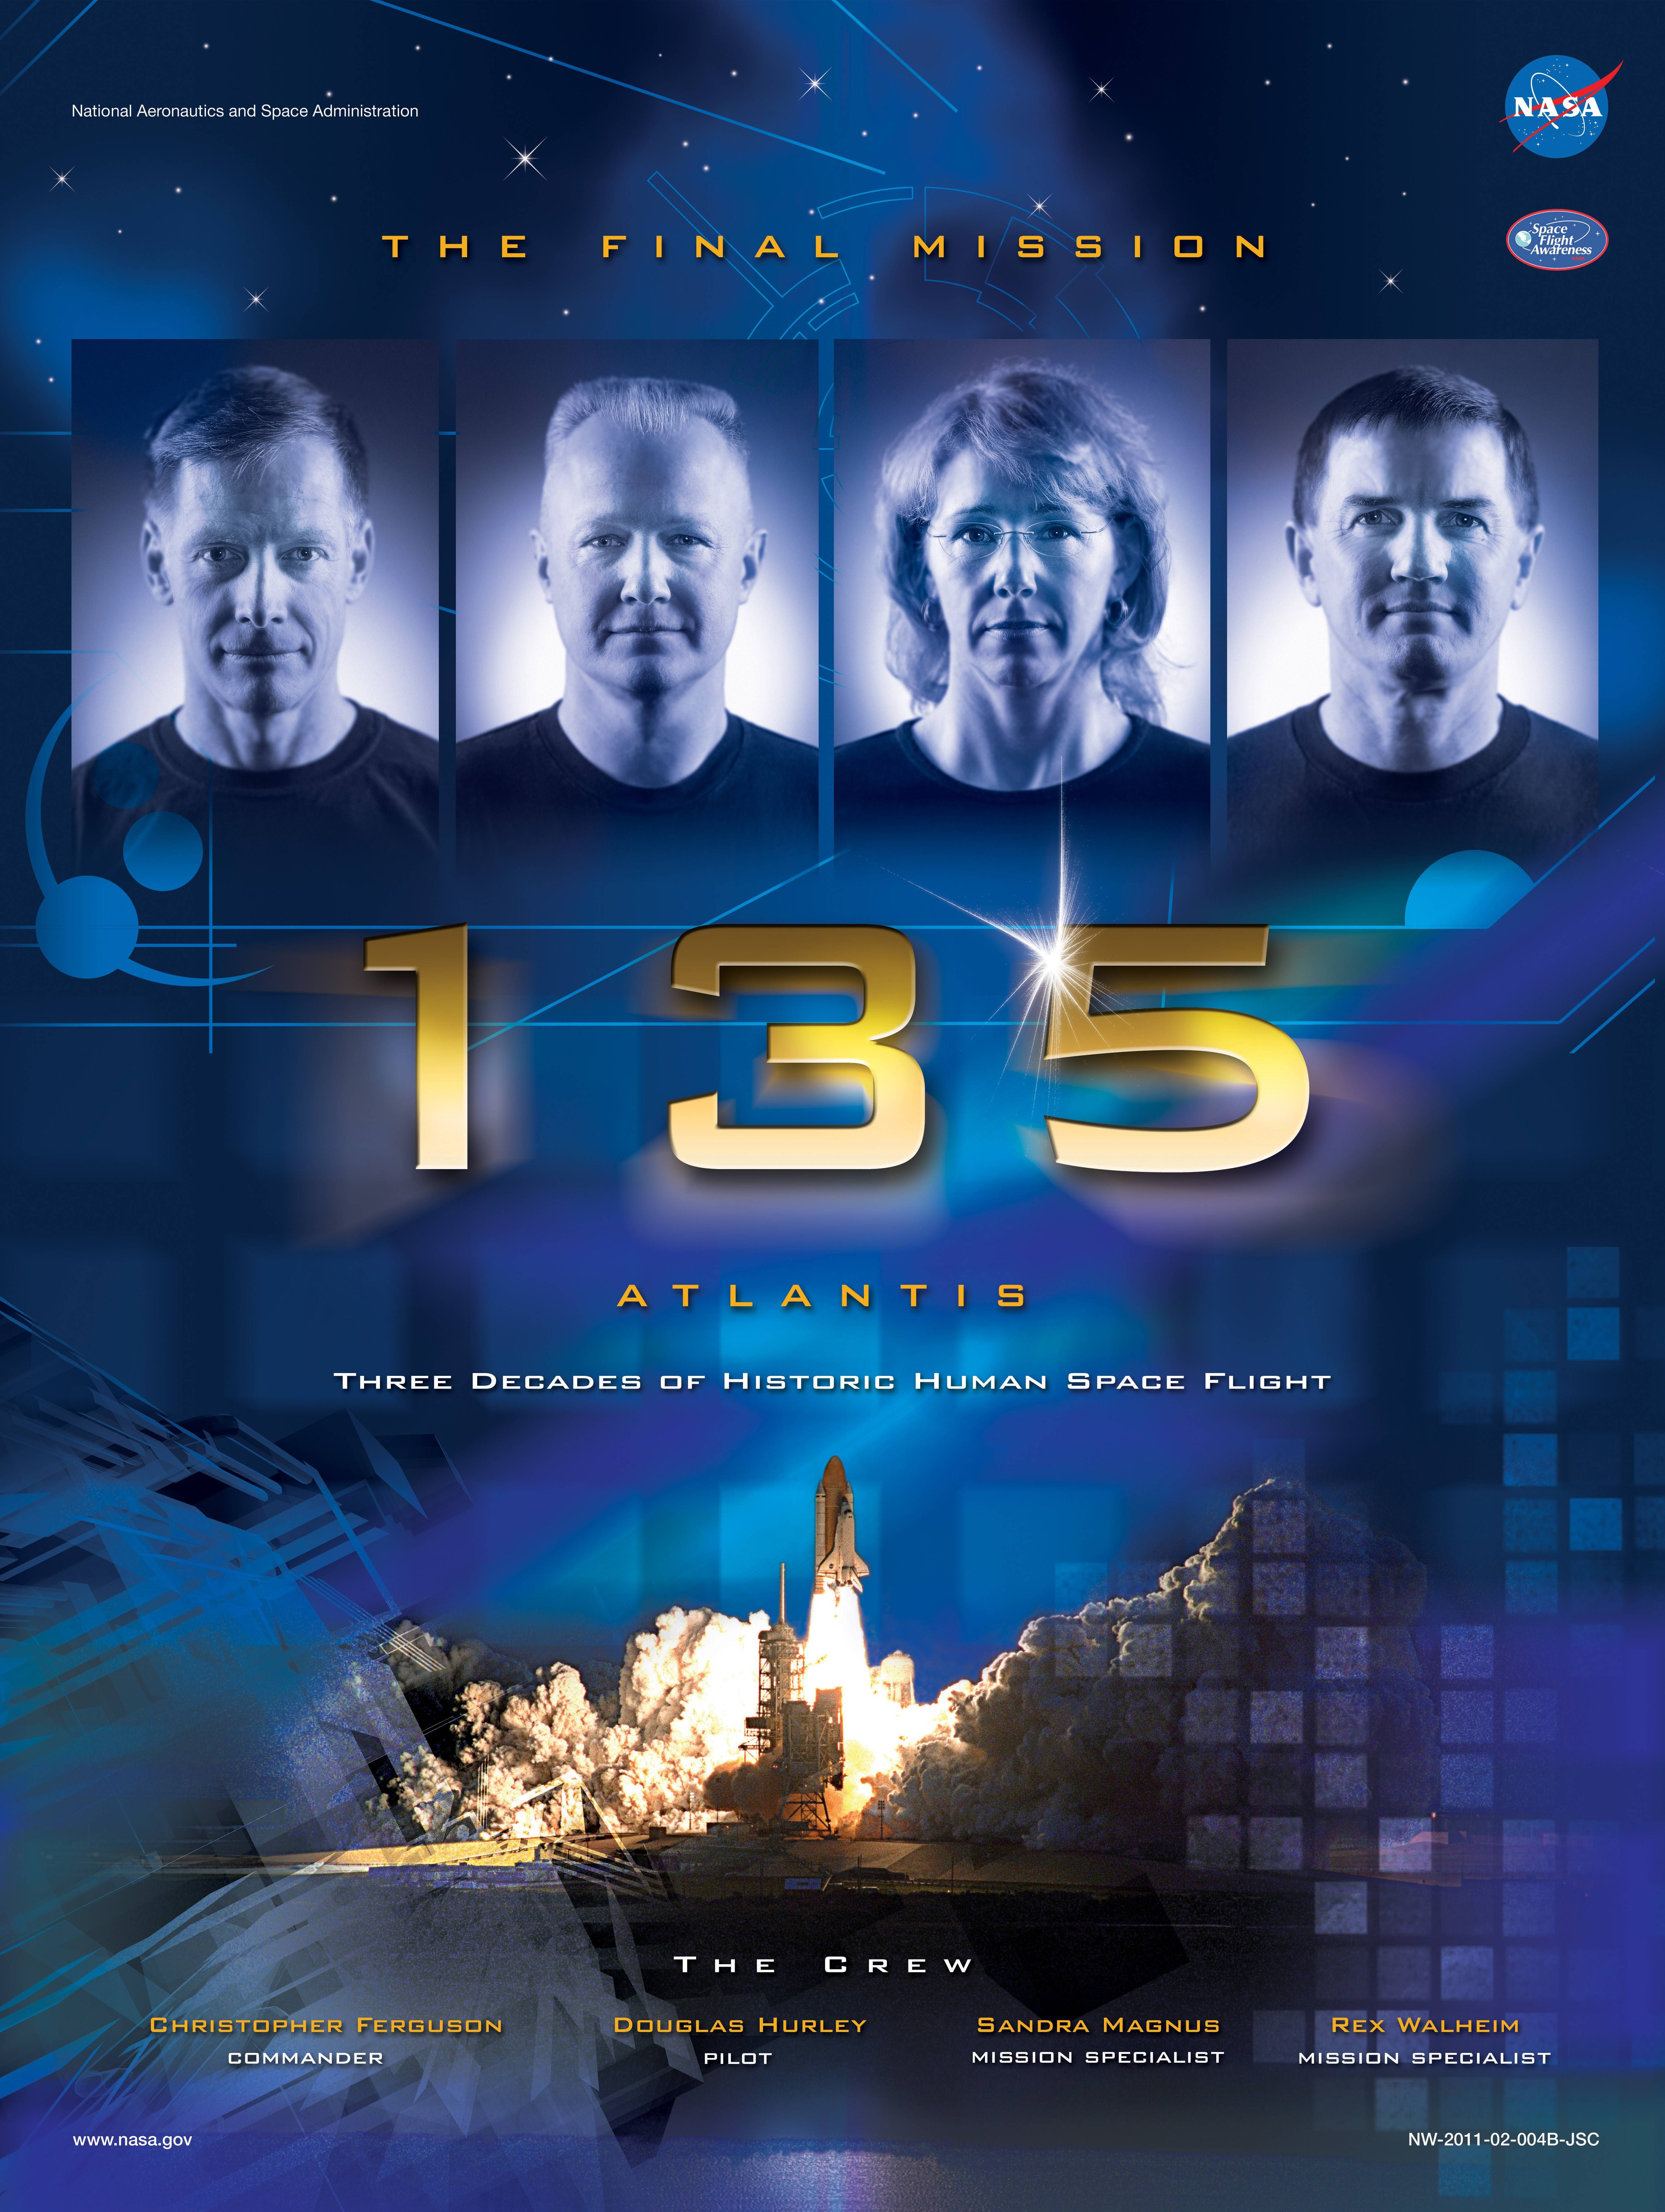 Mission poster for sts135 the last space shuttle flight